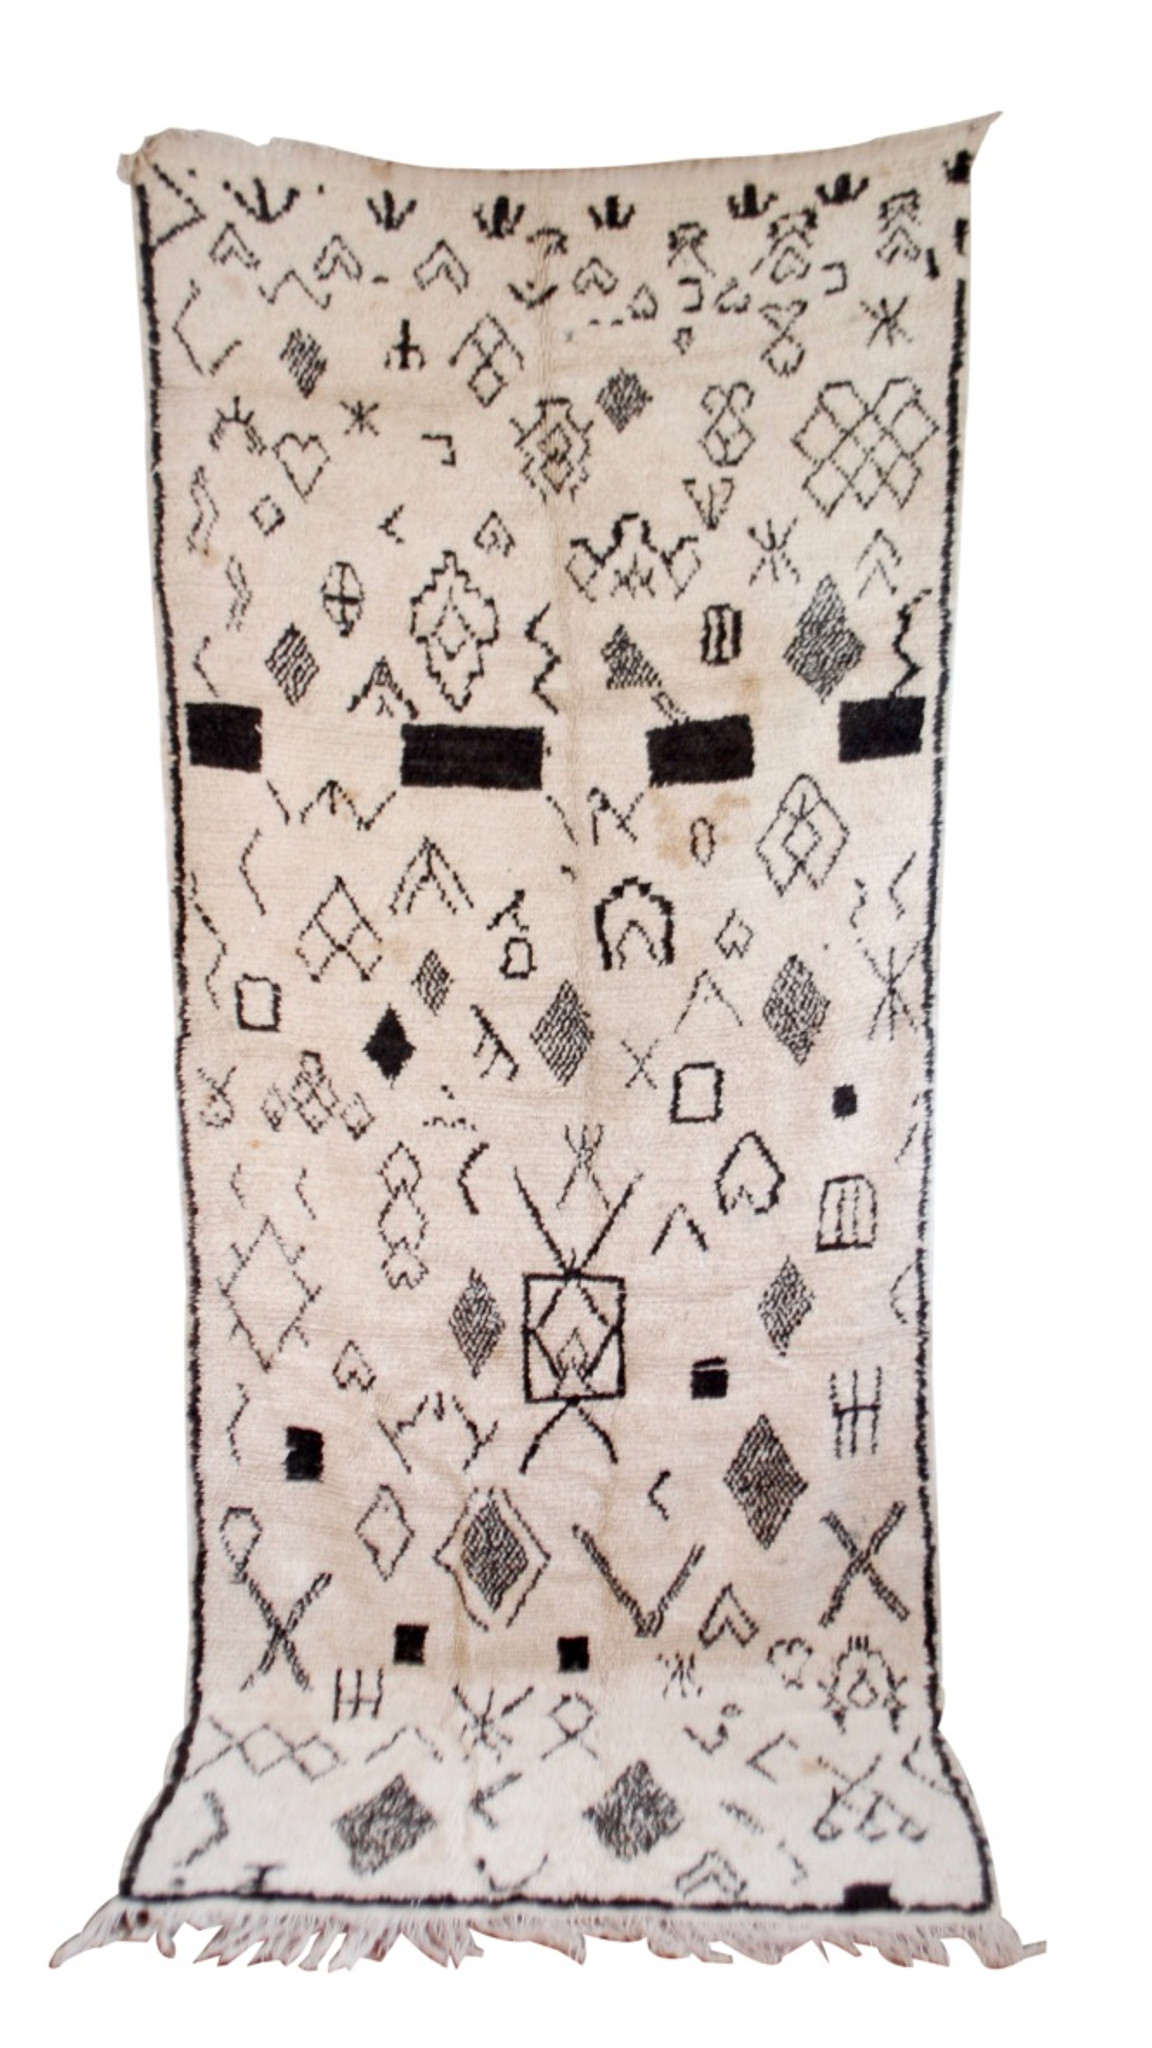 redoute image style woven ppdp pm am berber rug wool la nyborg prod hand